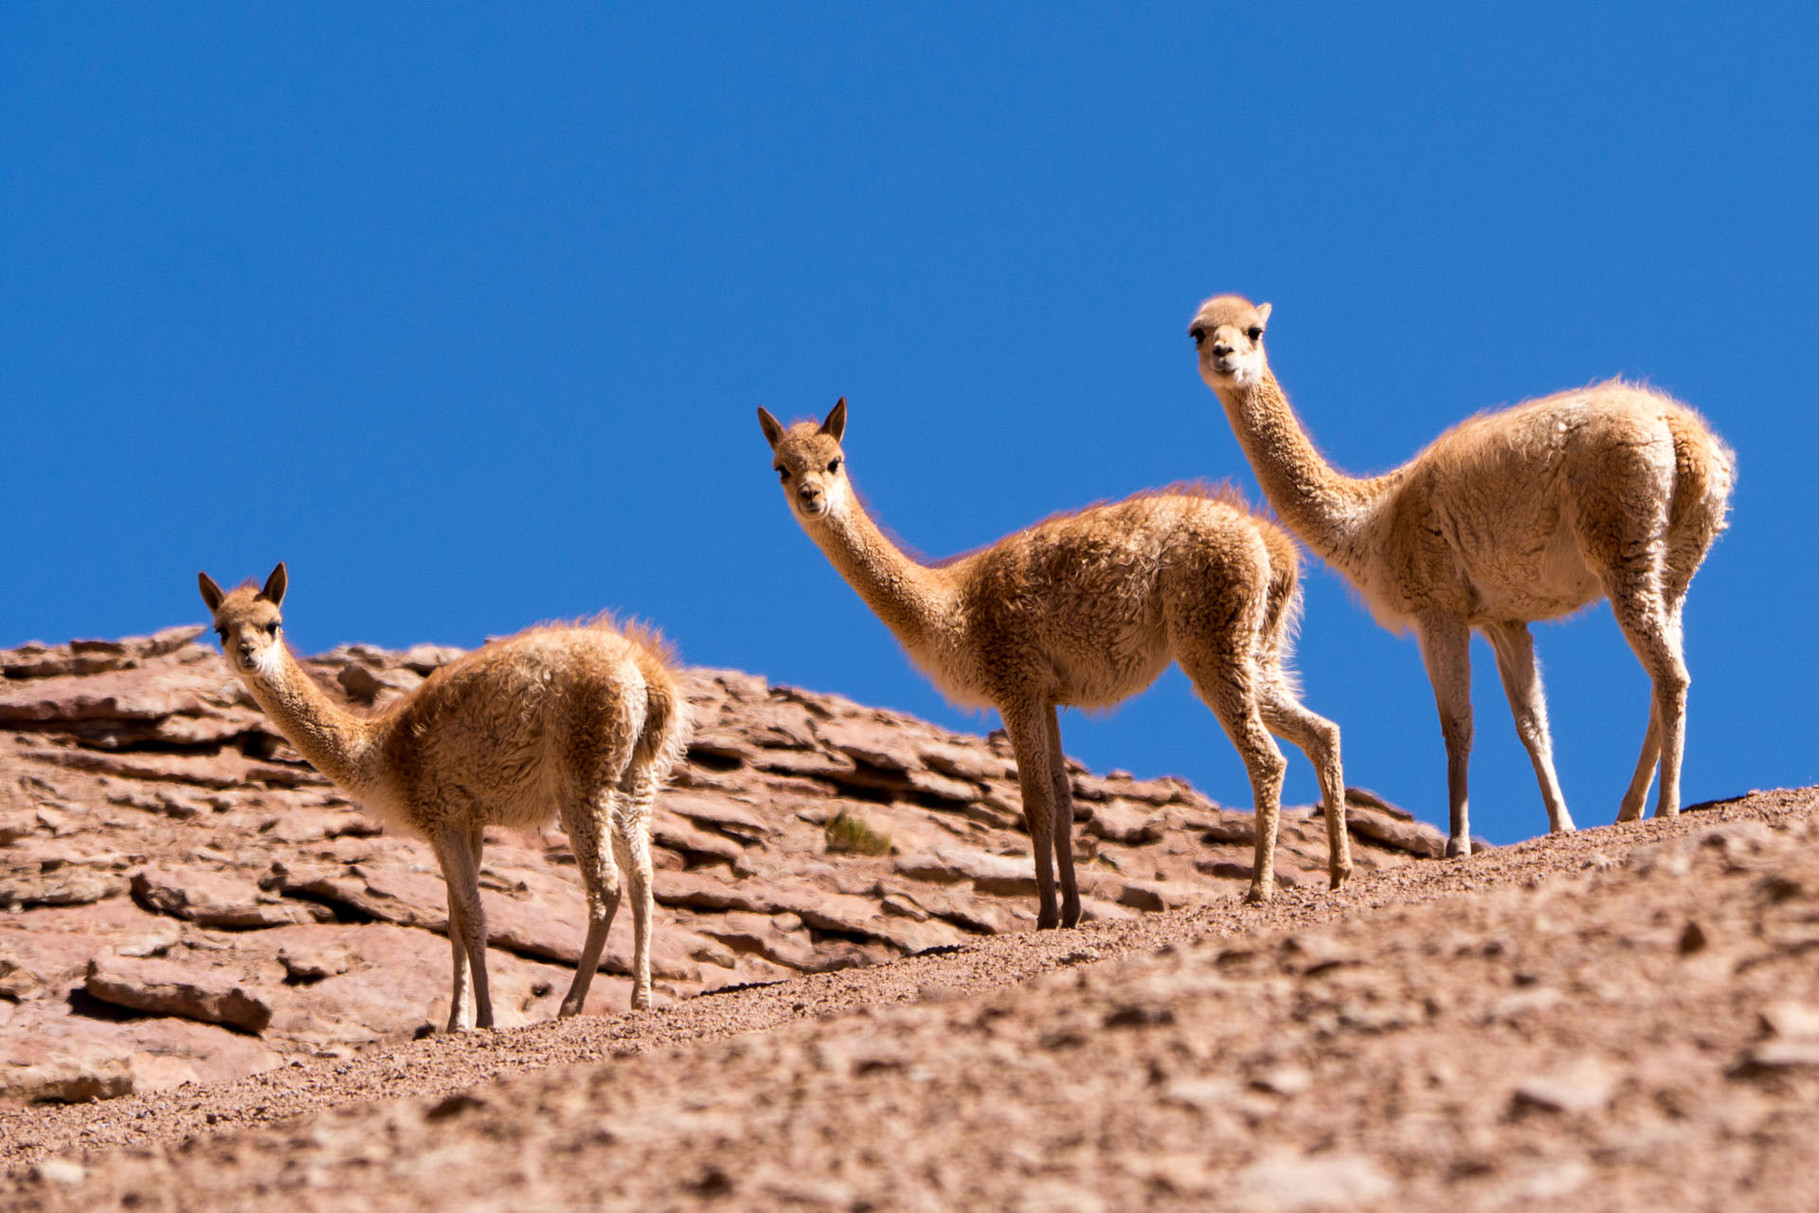 Vicunas in the dessert